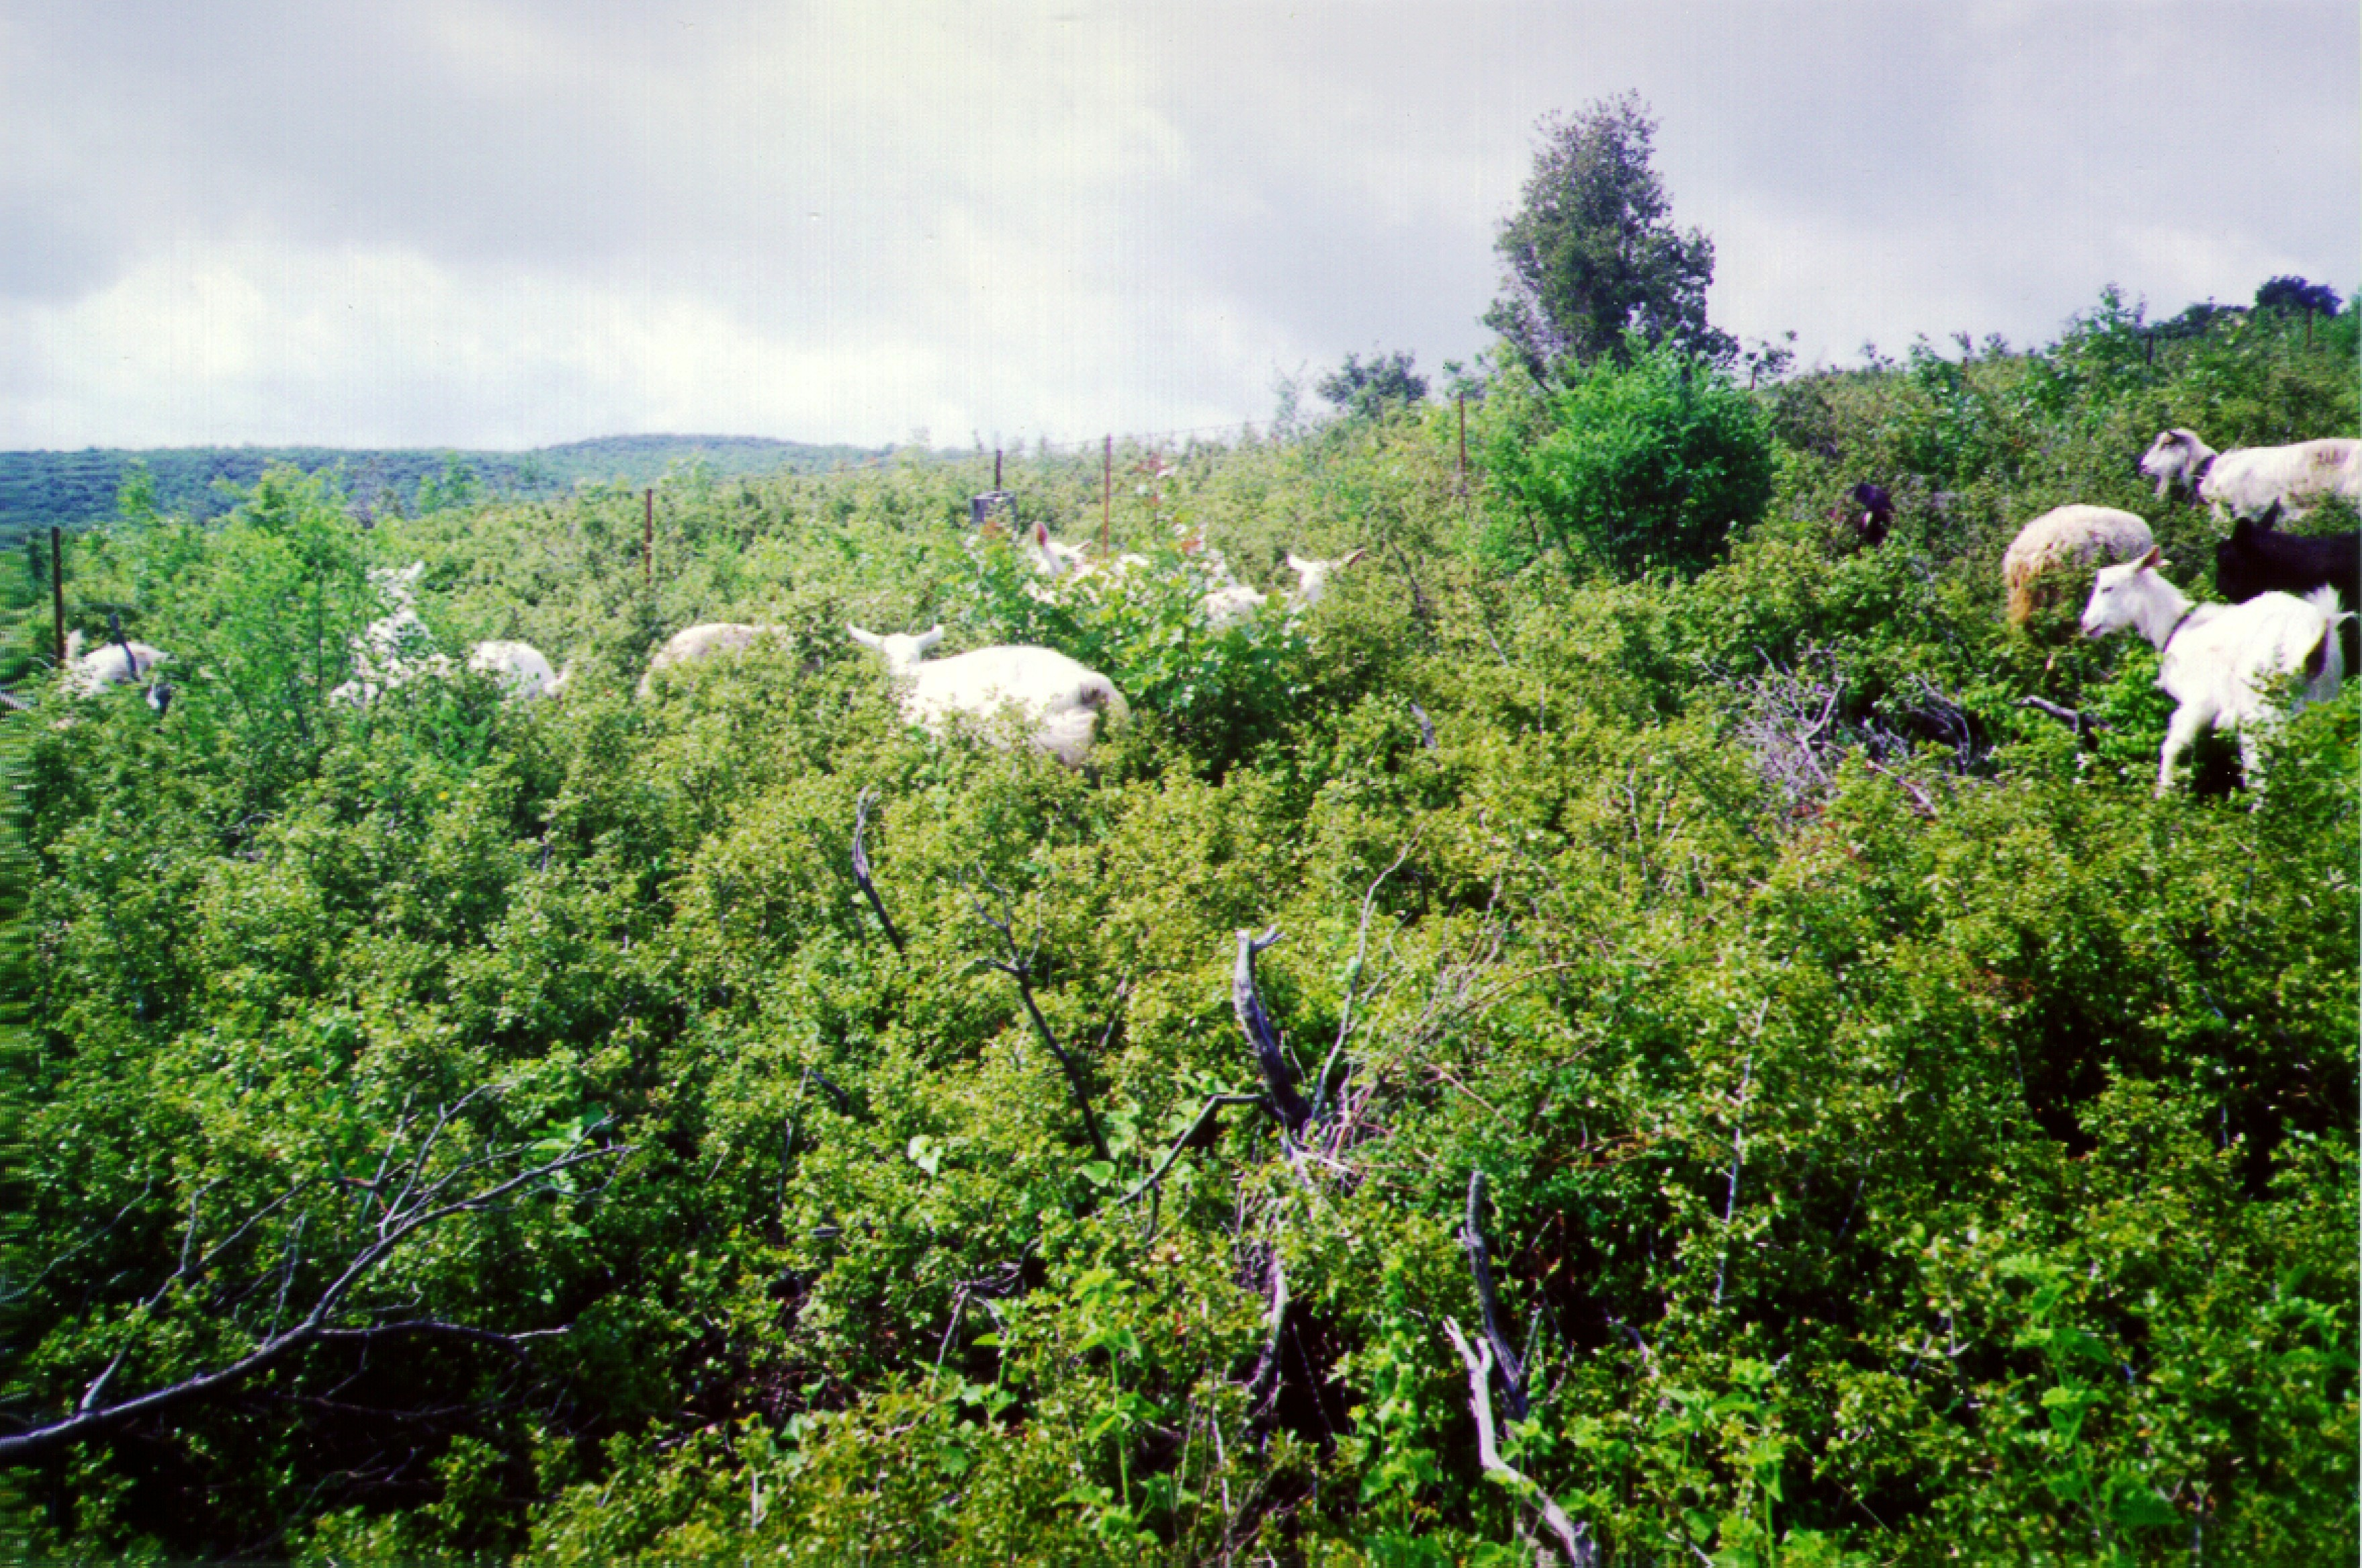 Goats grazing on dense shrubland